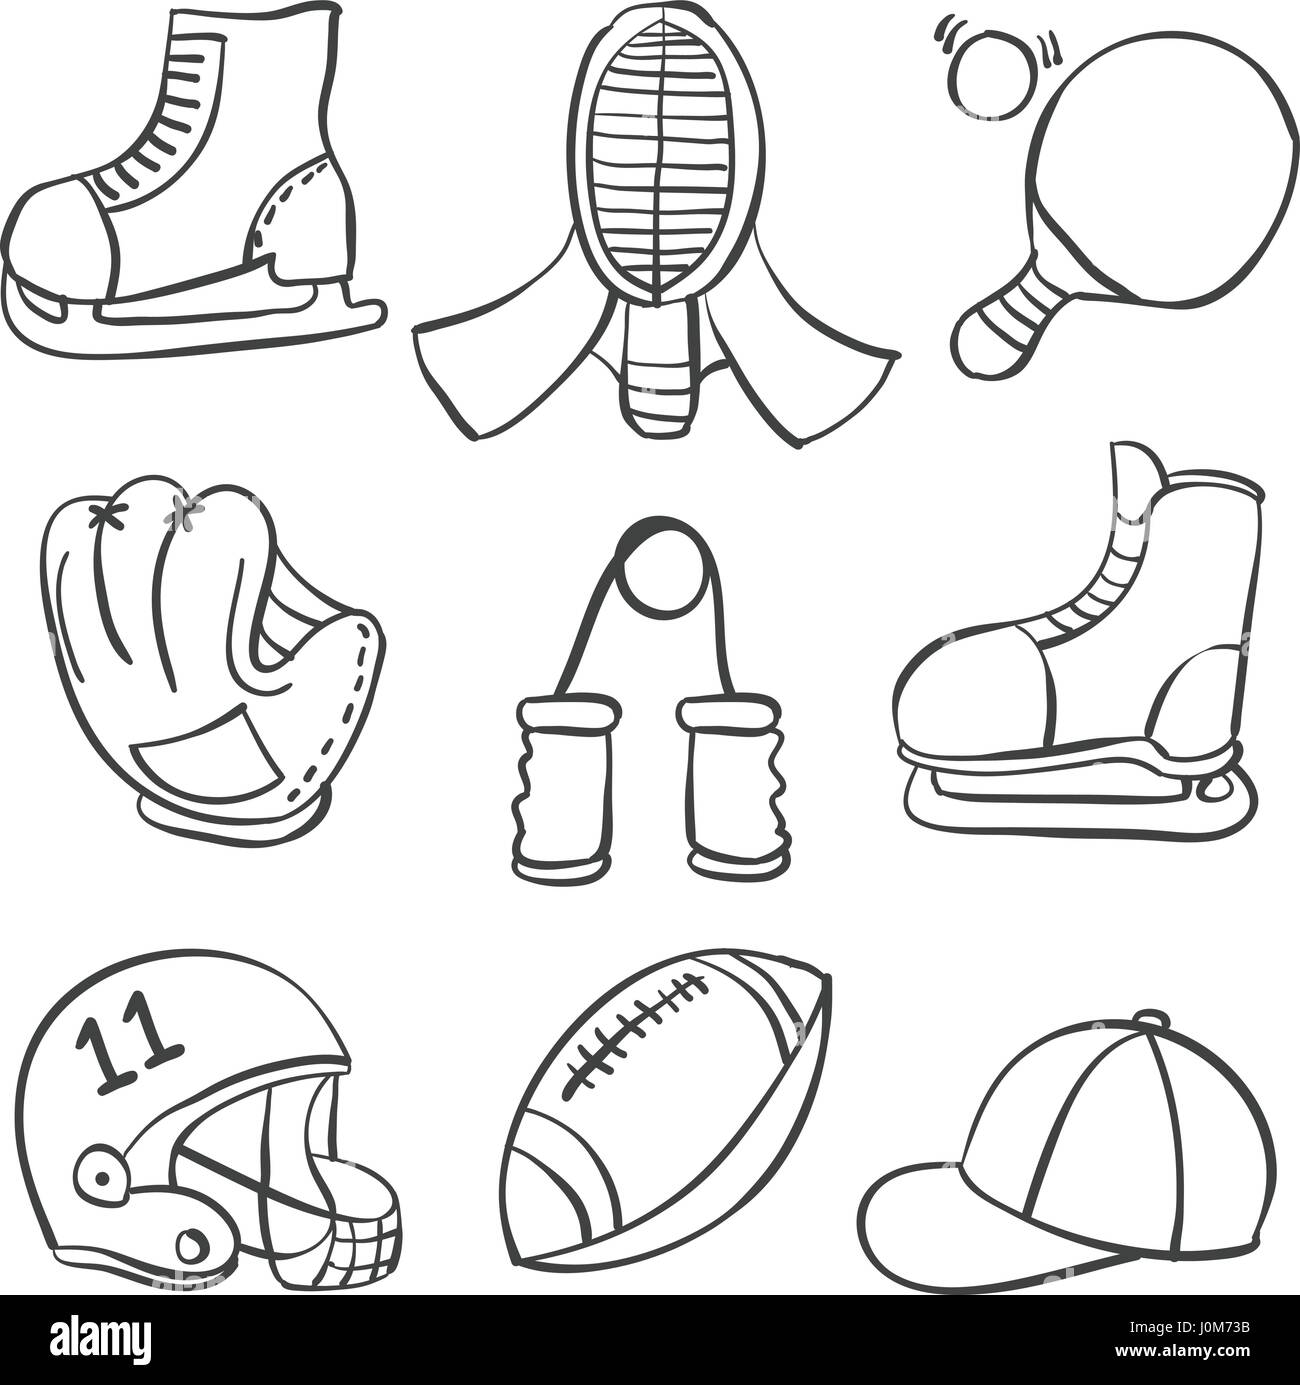 Illustration vector sport equipment various doodles - Stock Image